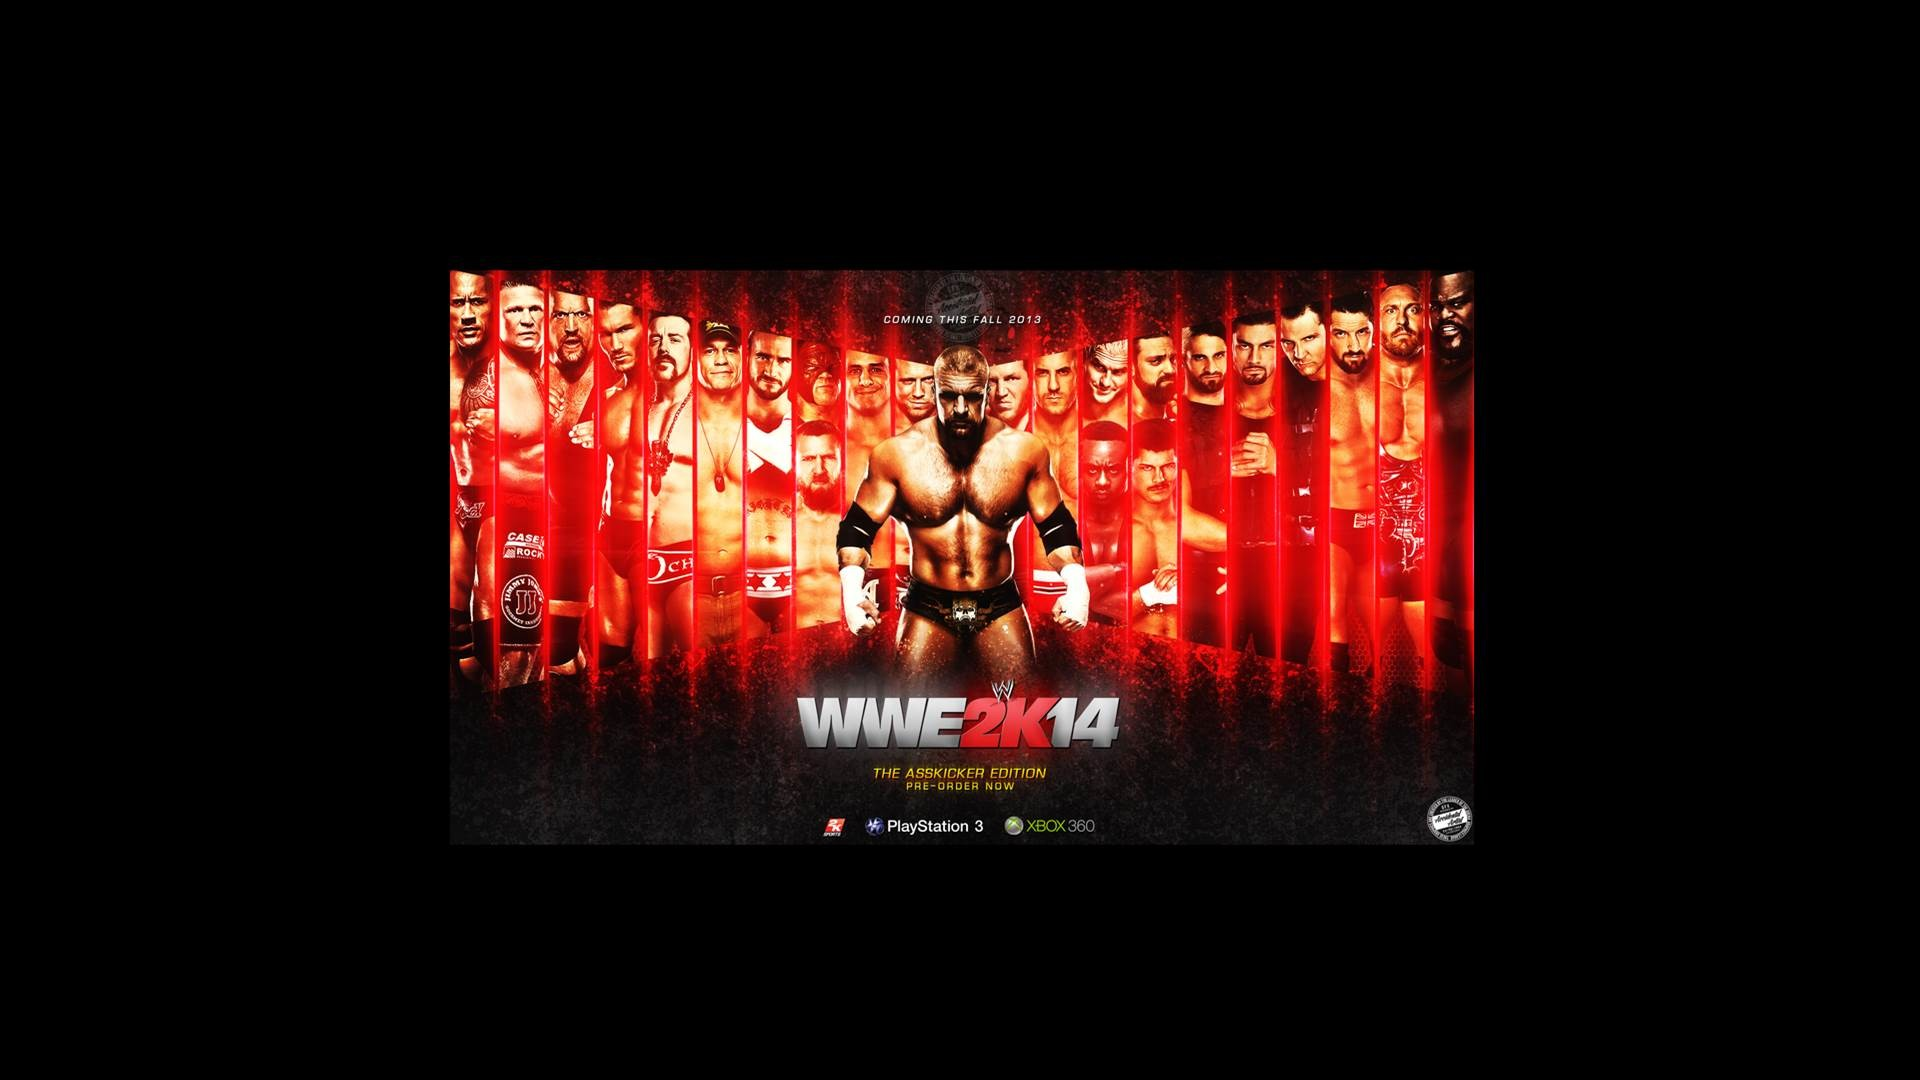 1920x1080 wwe 2k14 hd wallpaper